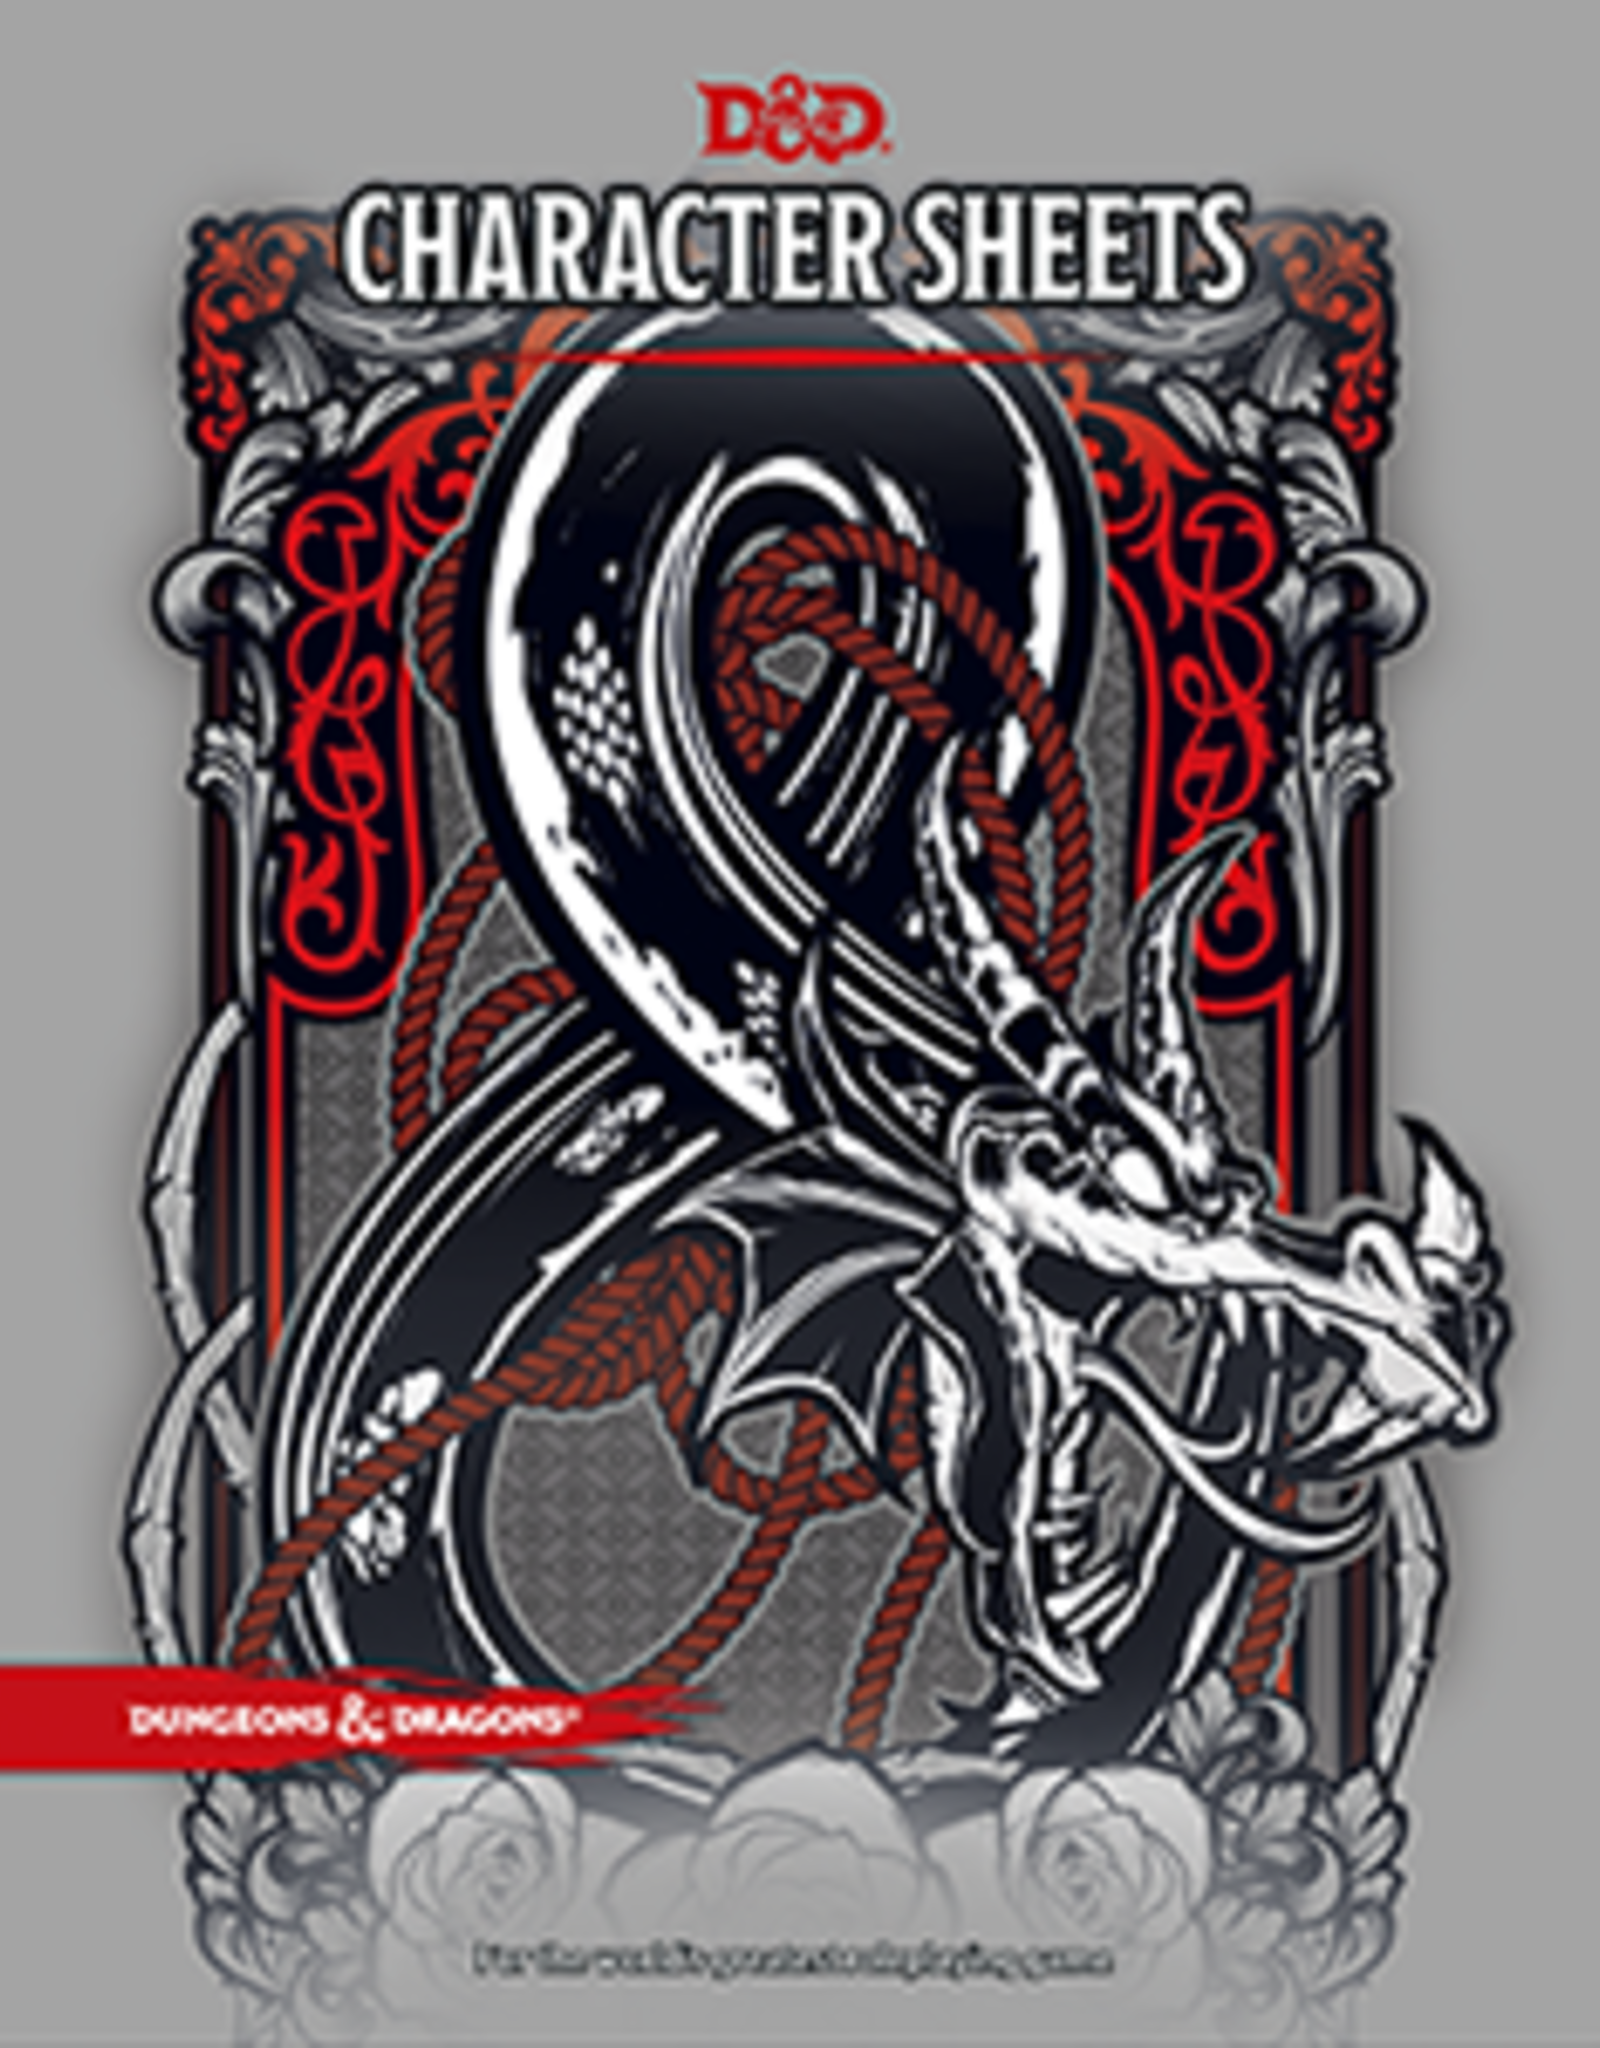 Wizards of the Coast Dungeons & Dragons Character Sheets